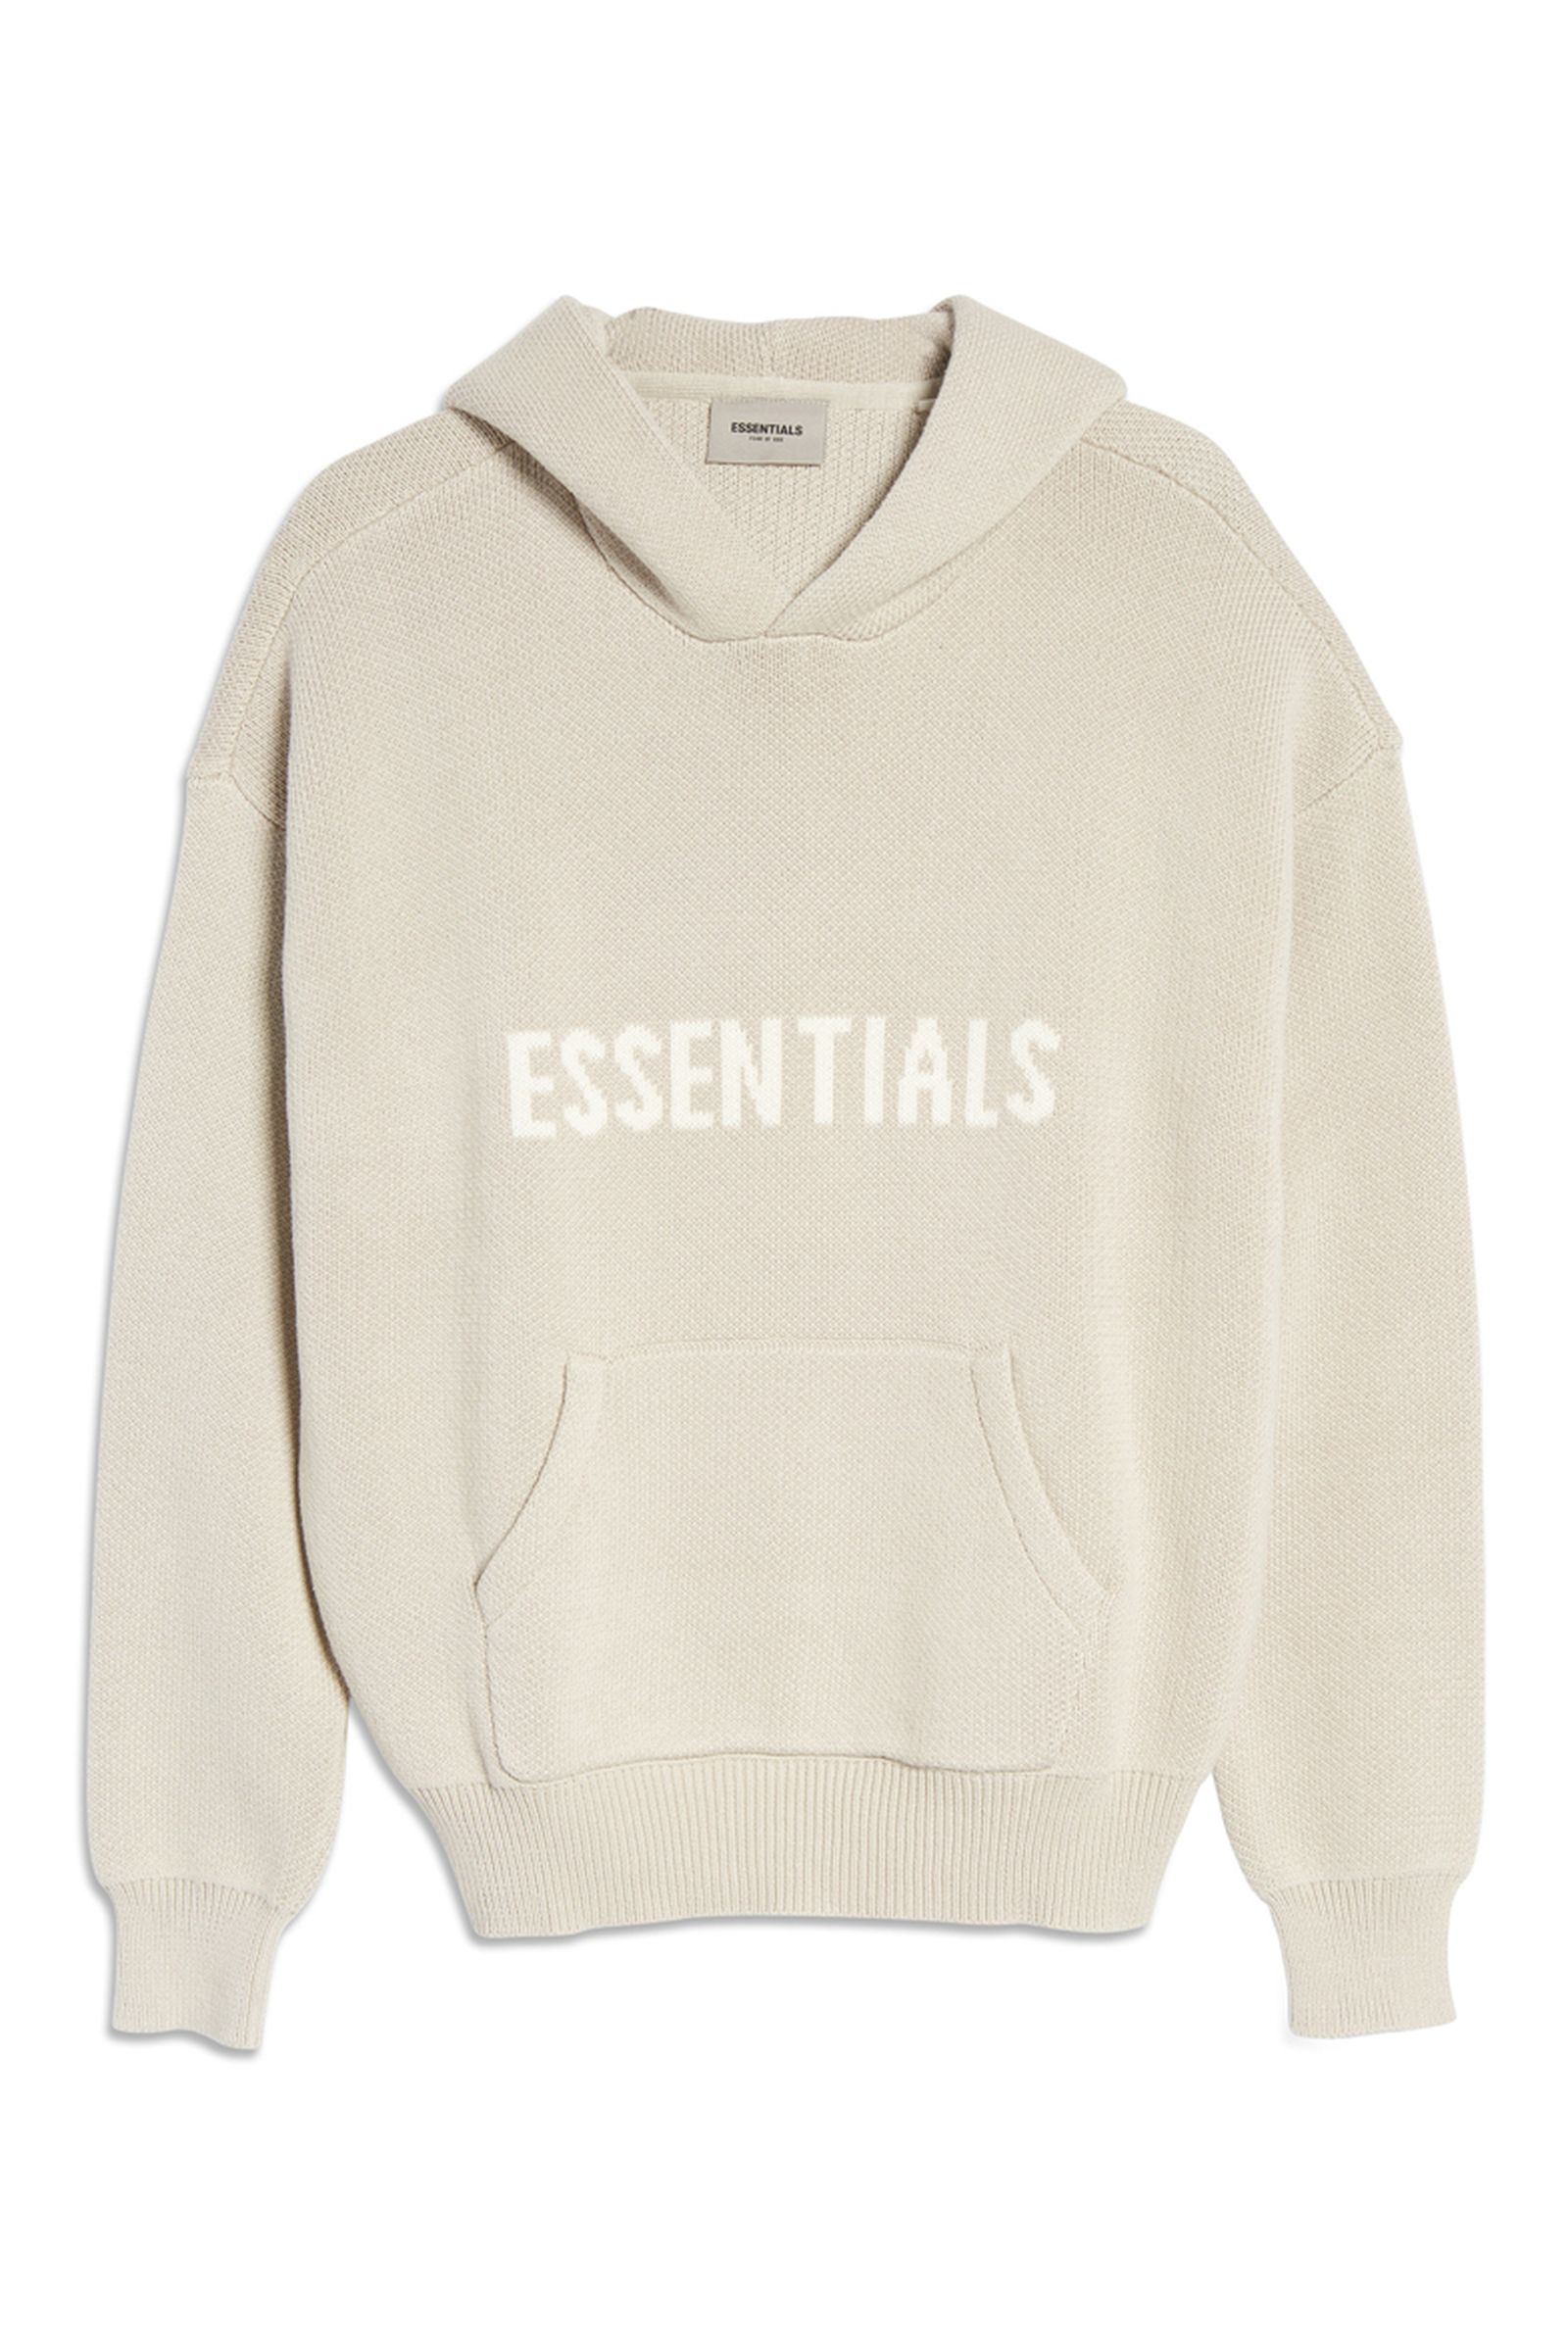 fear of god essentials nordstrom exclusive (7)